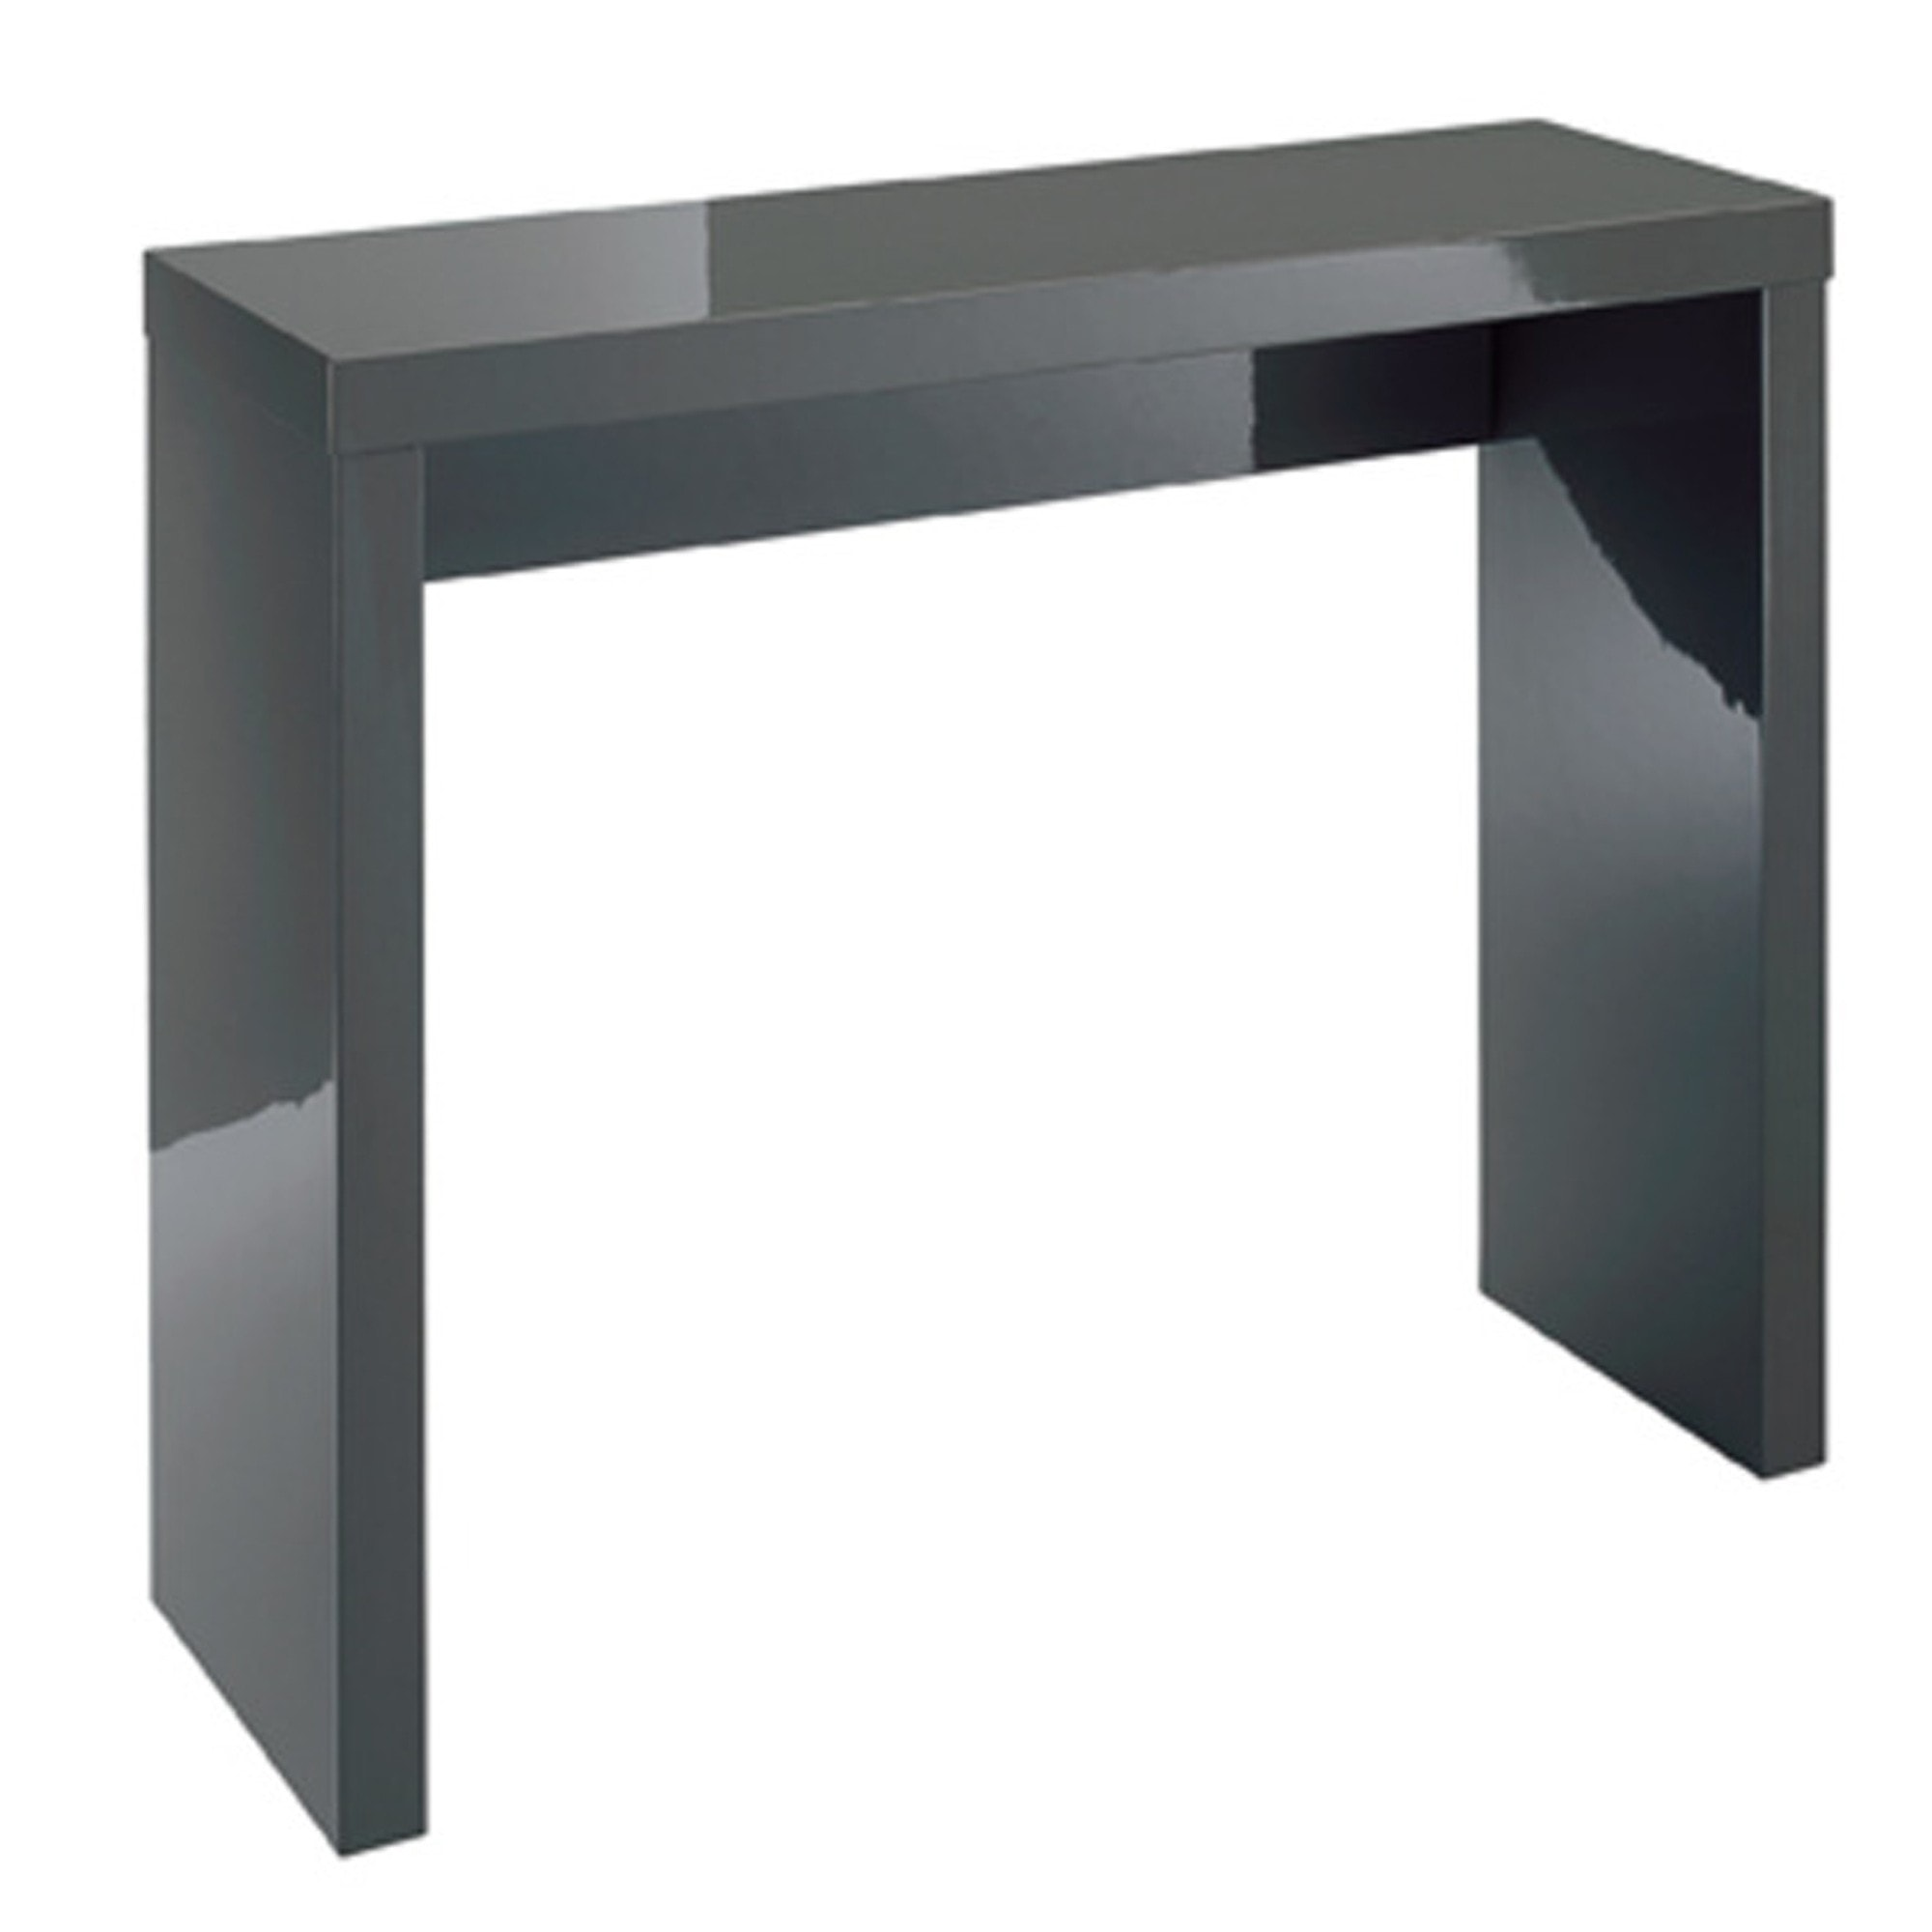 Remarkable Puro Charcoal Console Table Squirreltailoven Fun Painted Chair Ideas Images Squirreltailovenorg